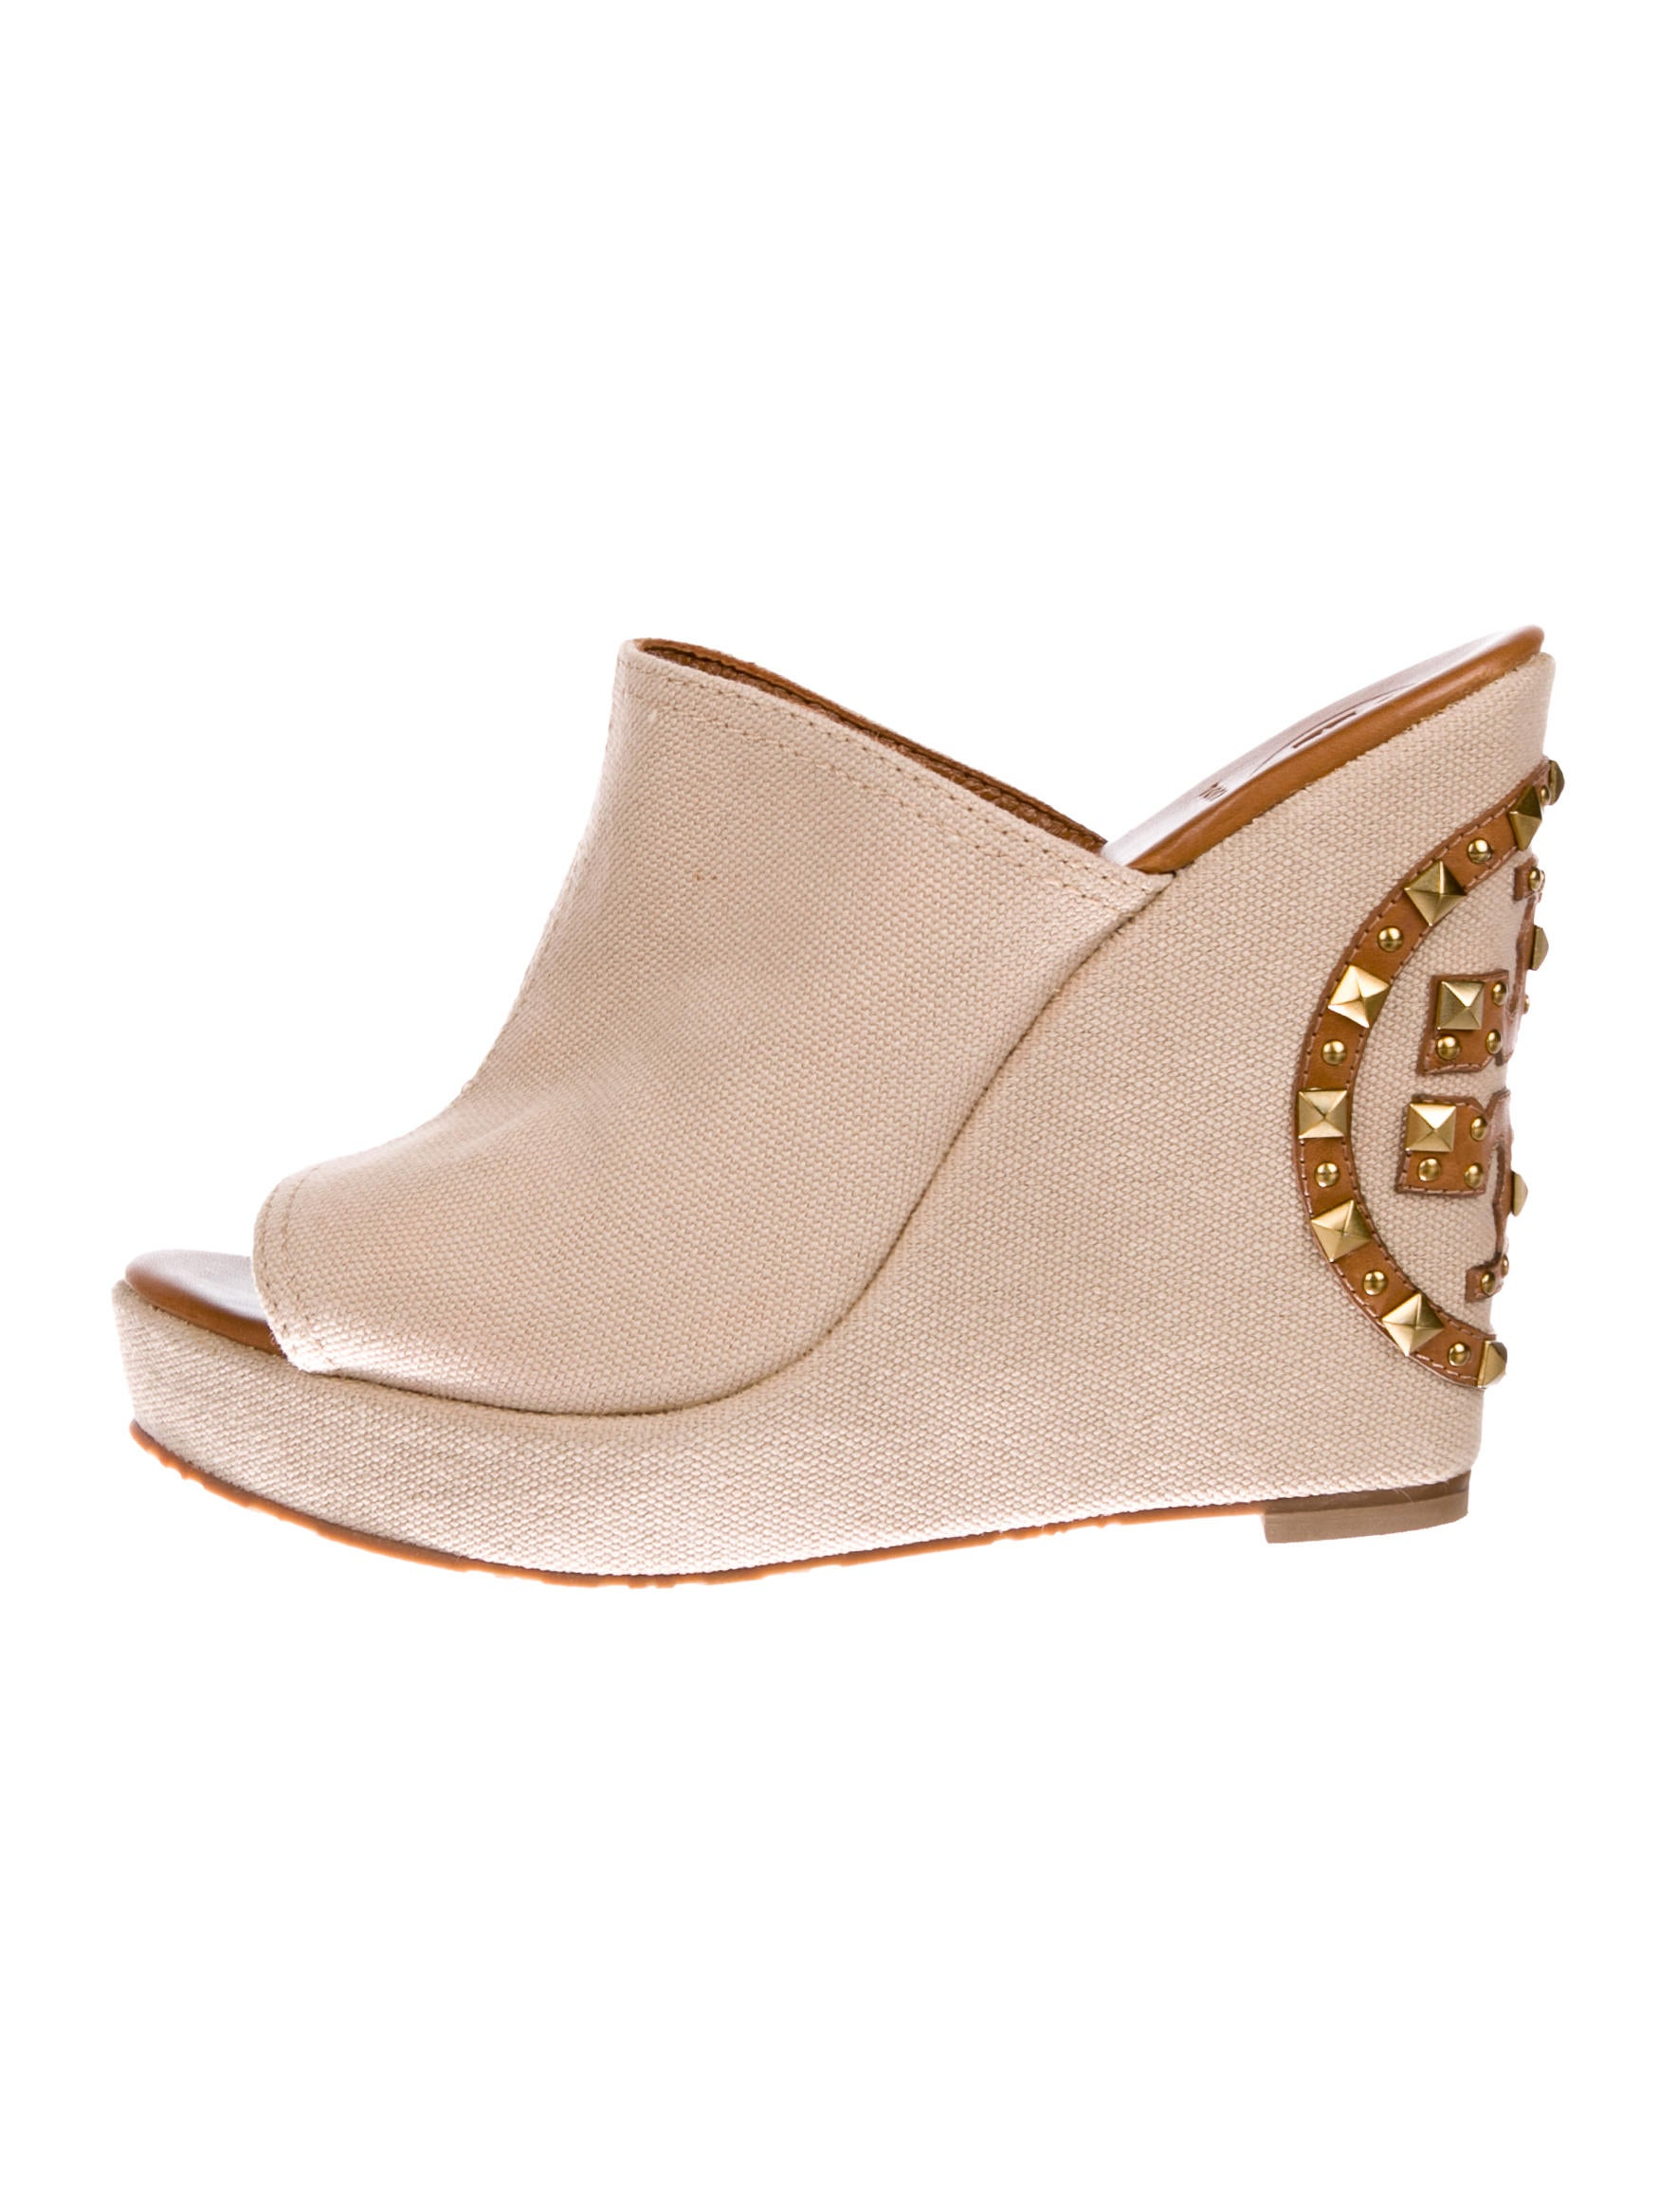 86b380b843a Tory Burch Meredith Wedge Sandals w  Tags - Shoes - WTO147072